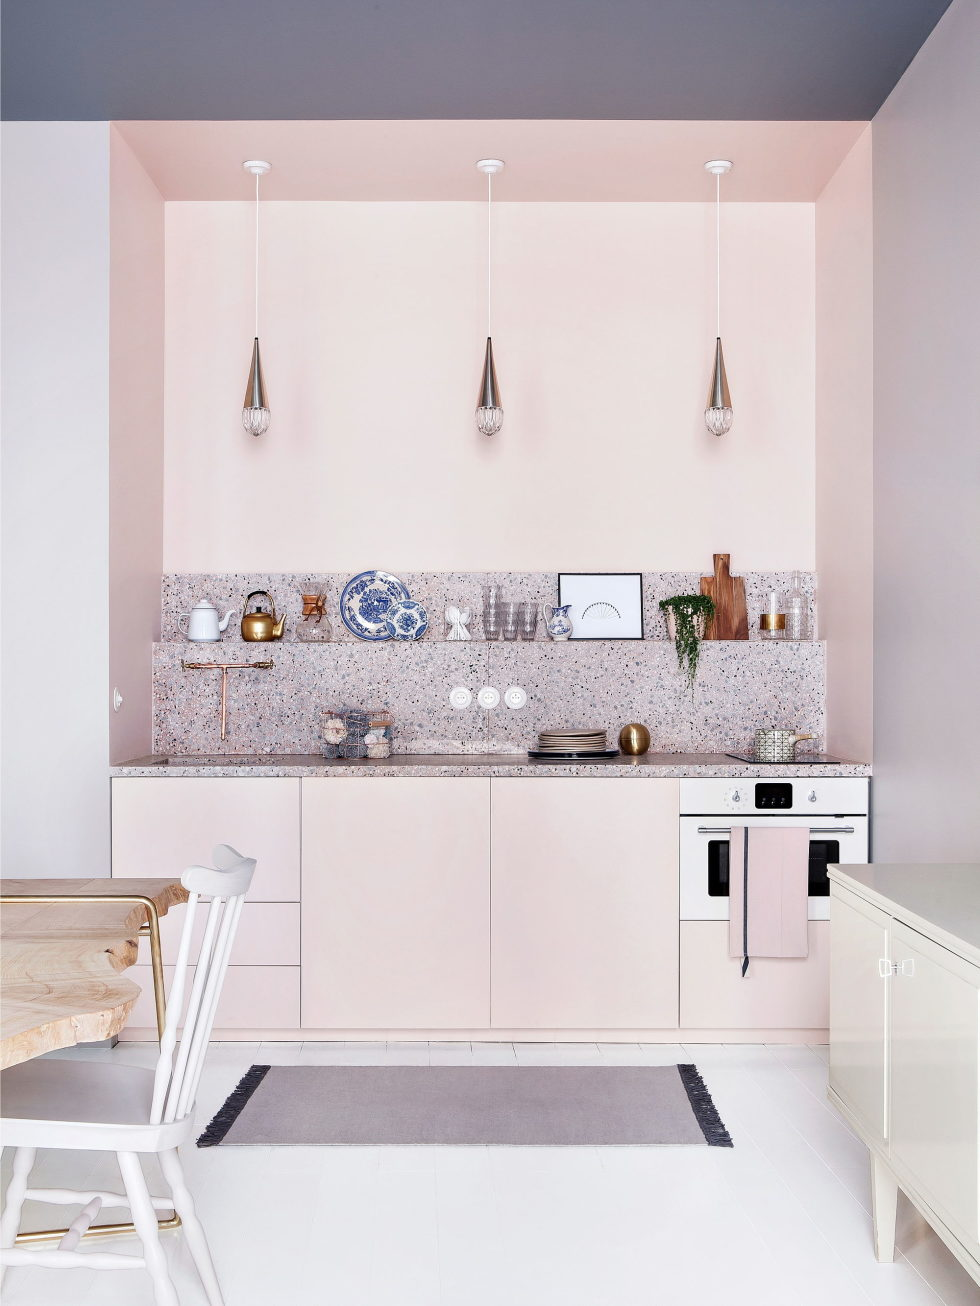 chez-marie-sixtine-the-apartment-for-guests-in-marie-sixtine-store-4